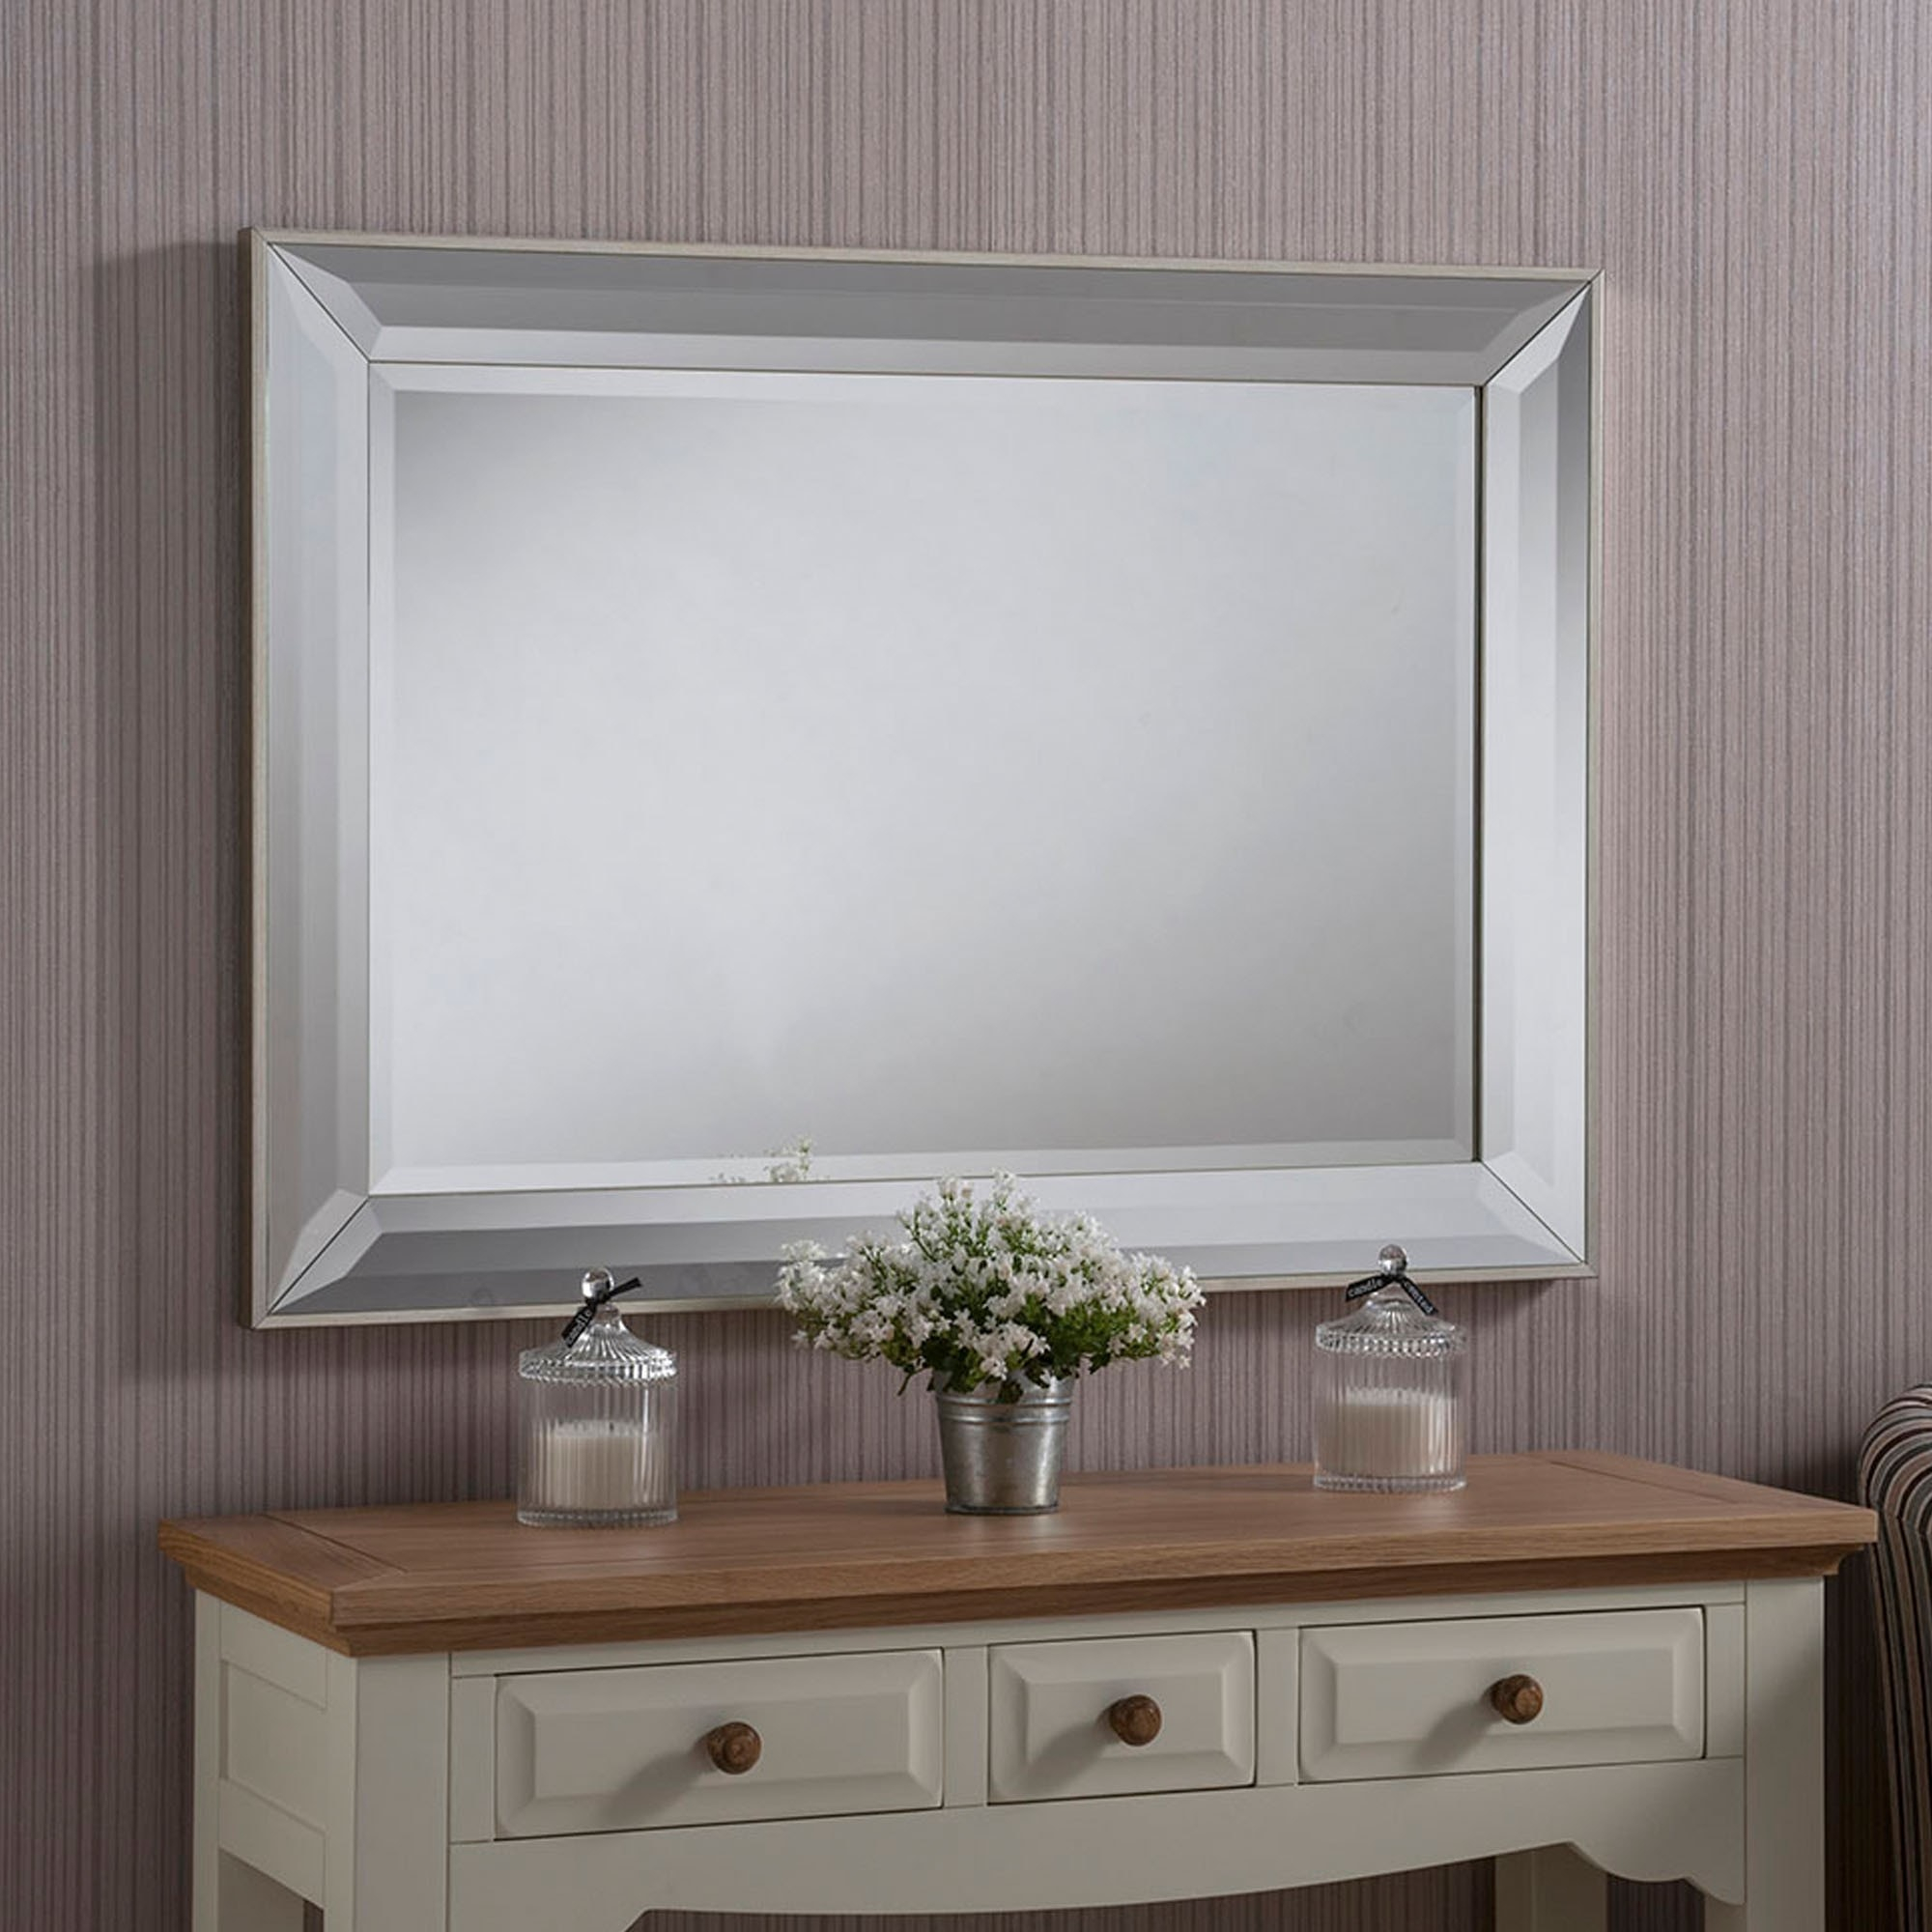 Contemporary Beveled Mirrored Wall Mirror throughout Modern & Contemporary Beveled Wall Mirrors (Image 5 of 30)